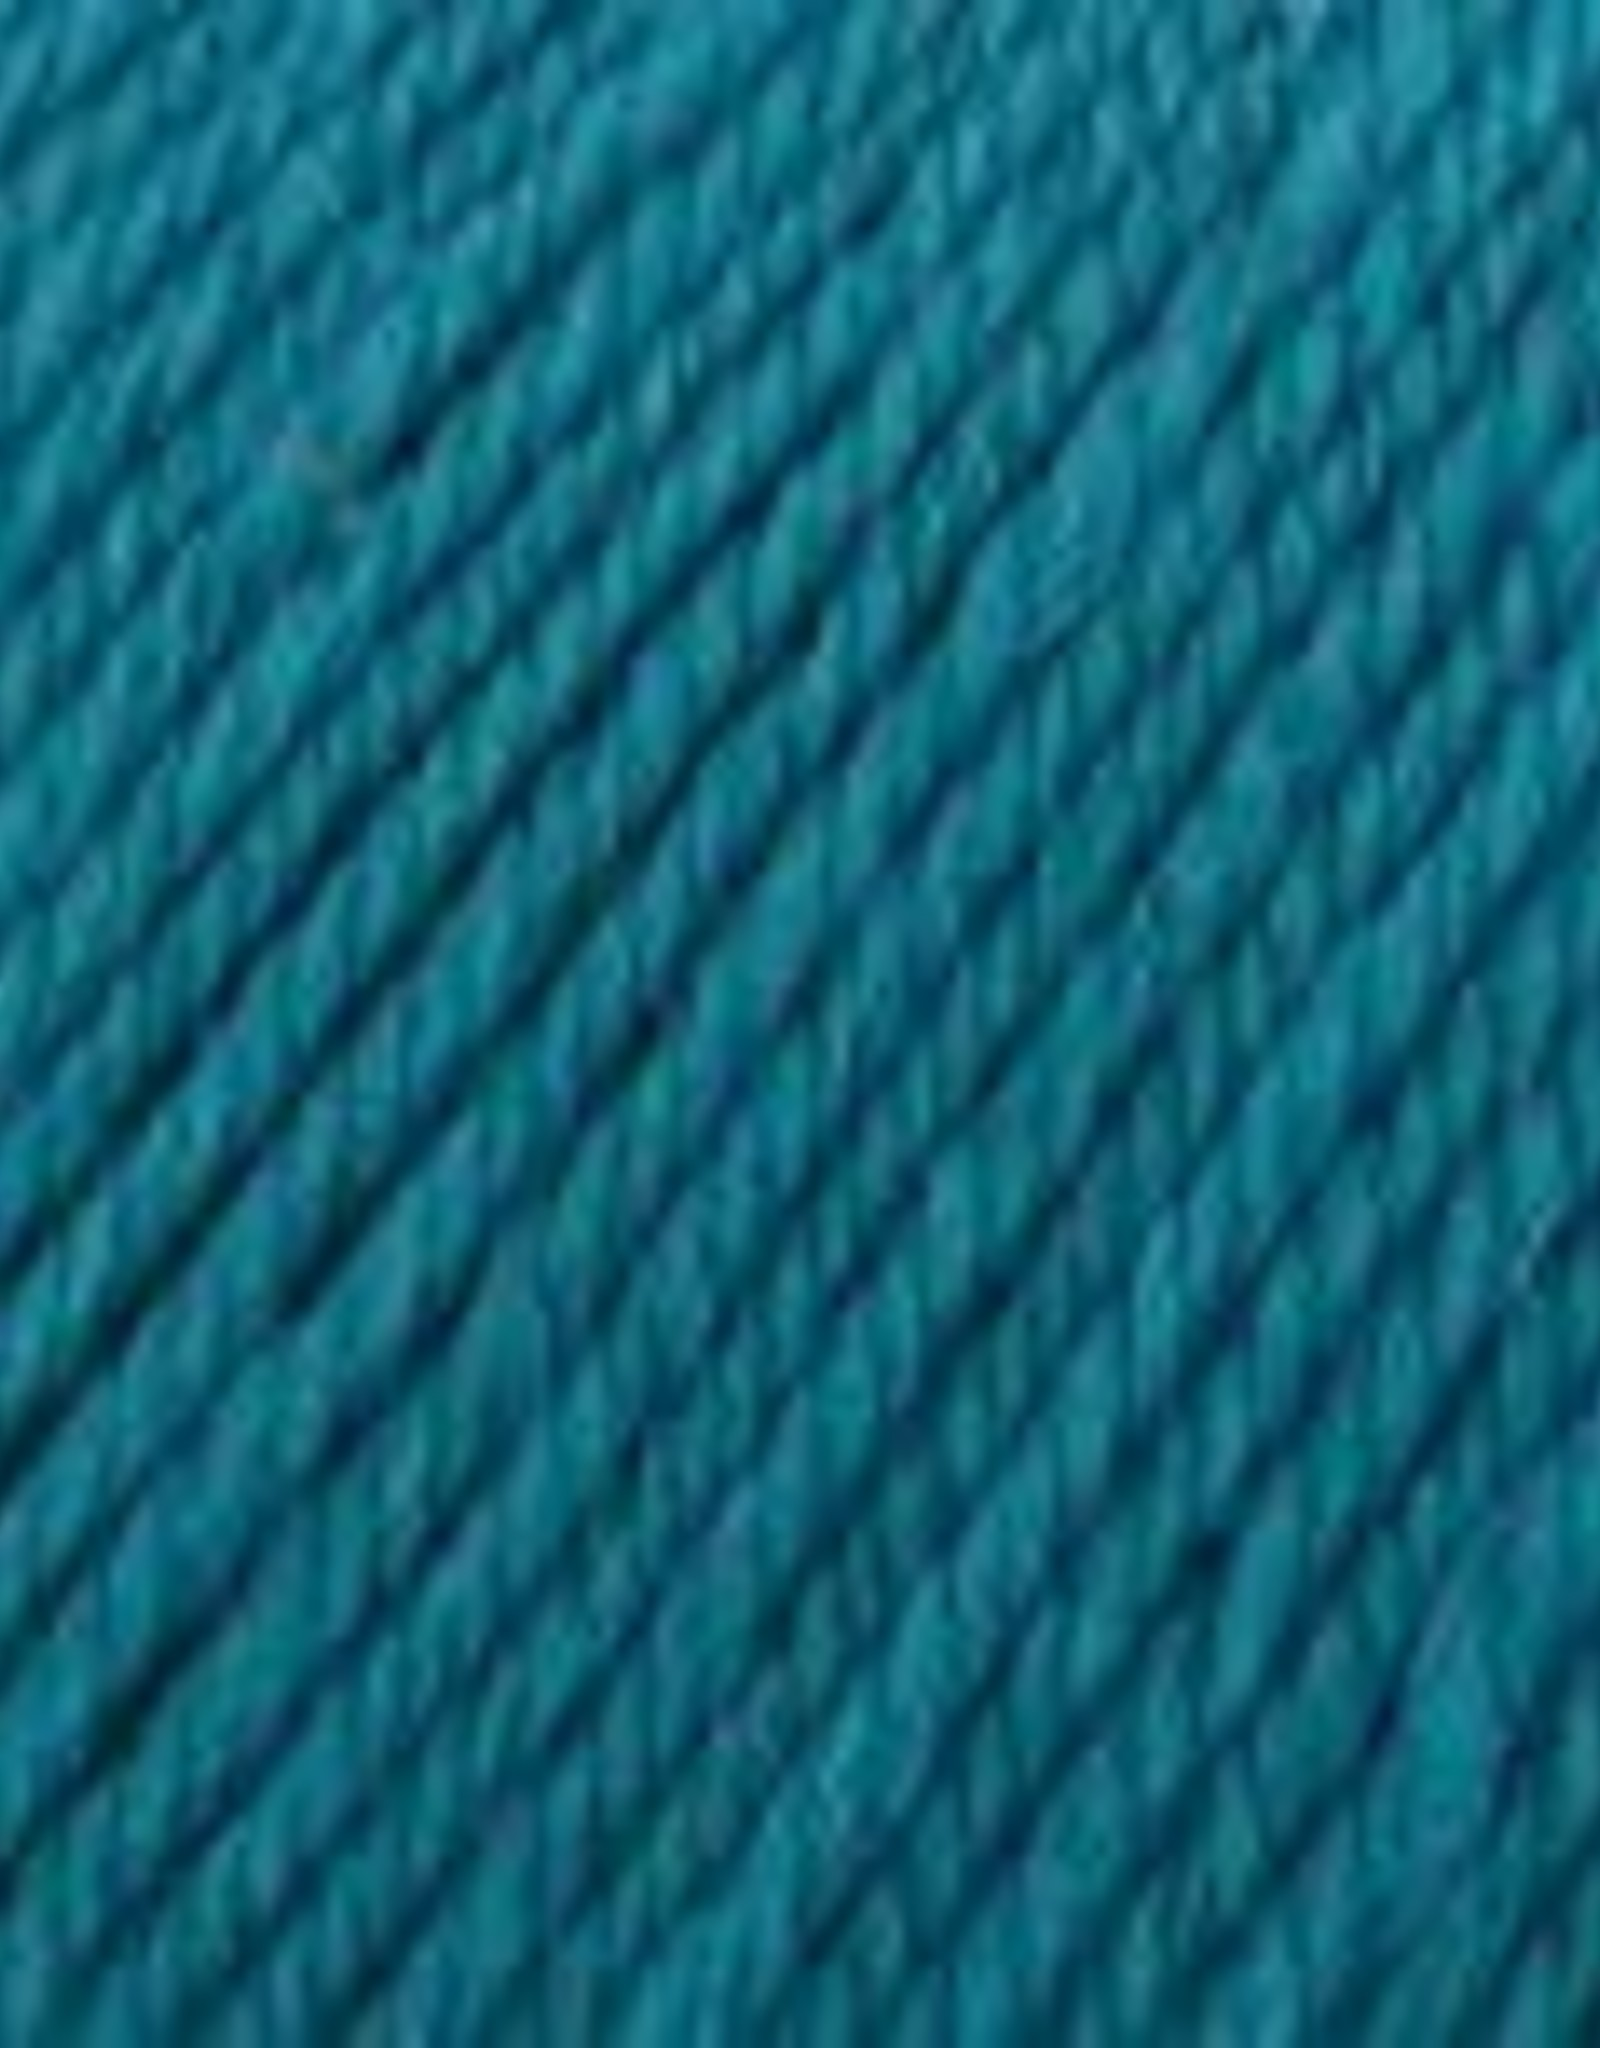 Universal Yarn Deluxe Worsted Superwash 715 Teal Viper